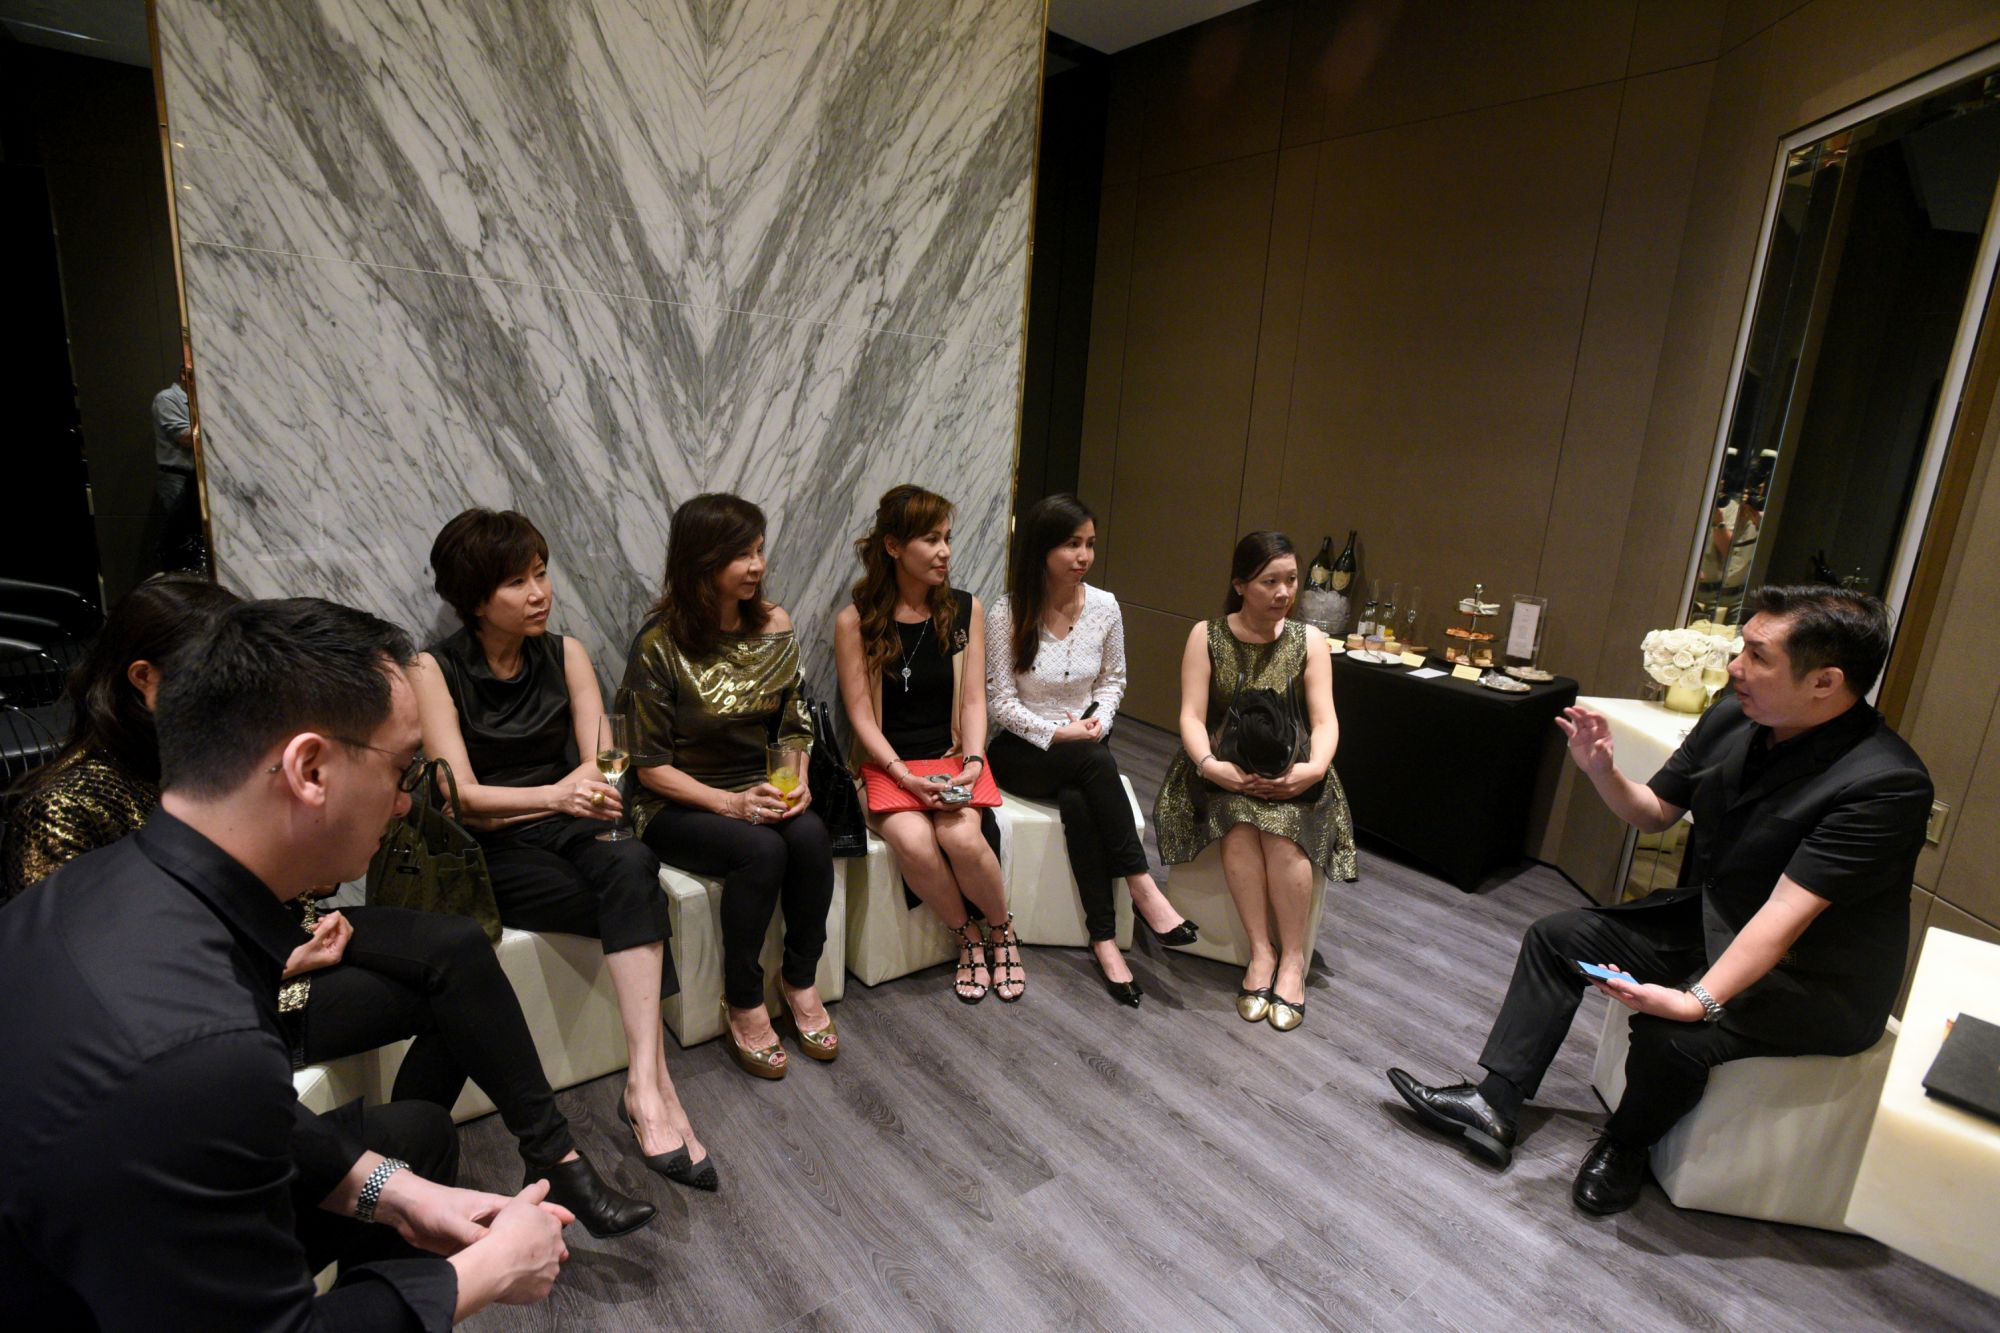 Dr. Christopher Looi, Sonia Ong, Nancy Ong, Violet Yeo, Carol Shieh, Sharon Lim, Dr. Frank Lee